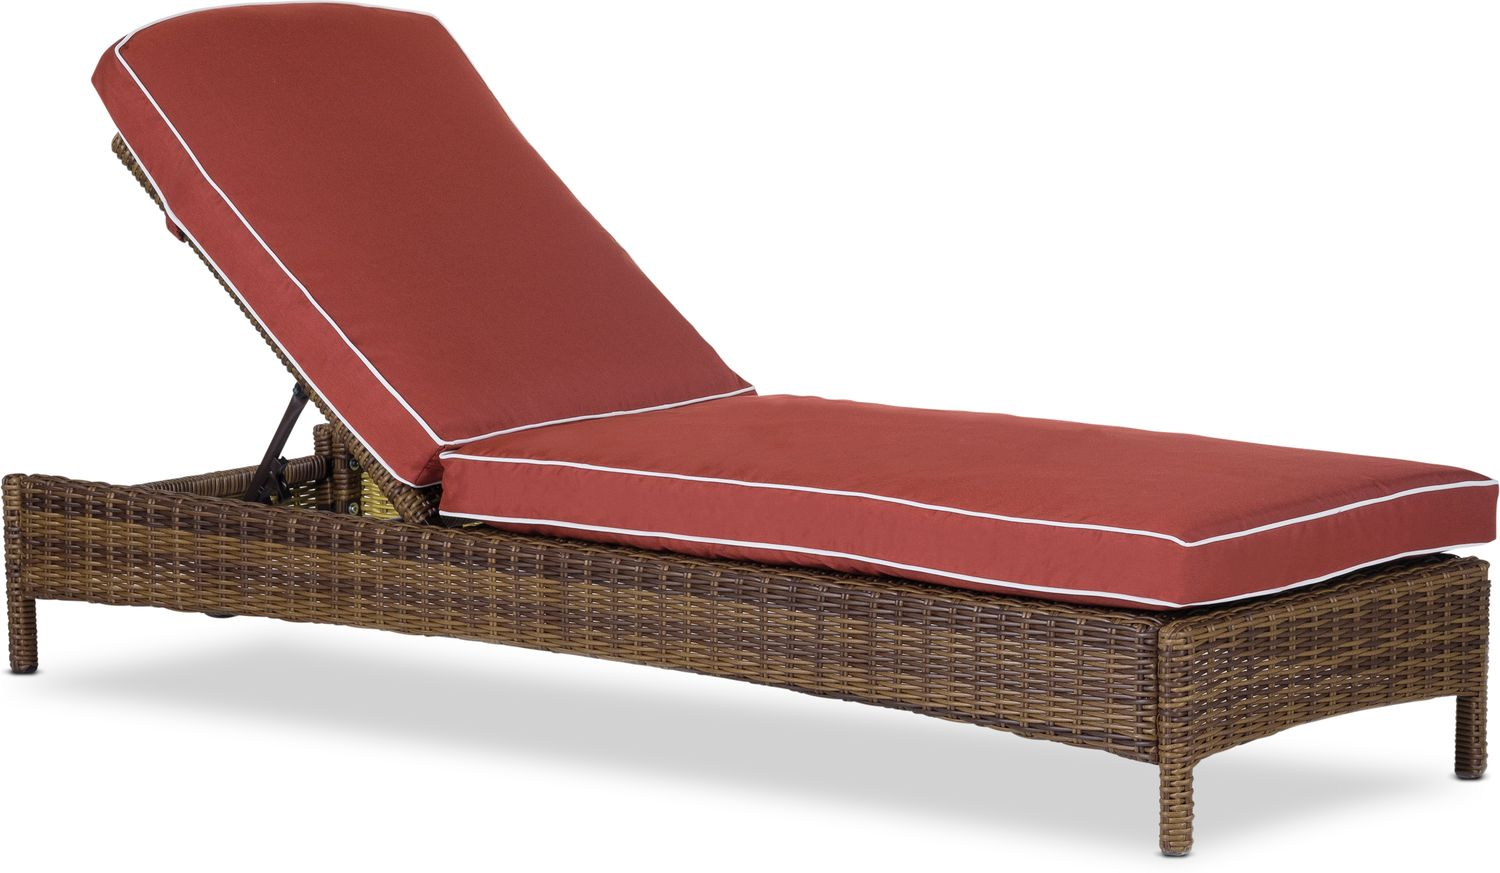 Outdoor Furniture - Jonah Outdoor Chaise Lounge